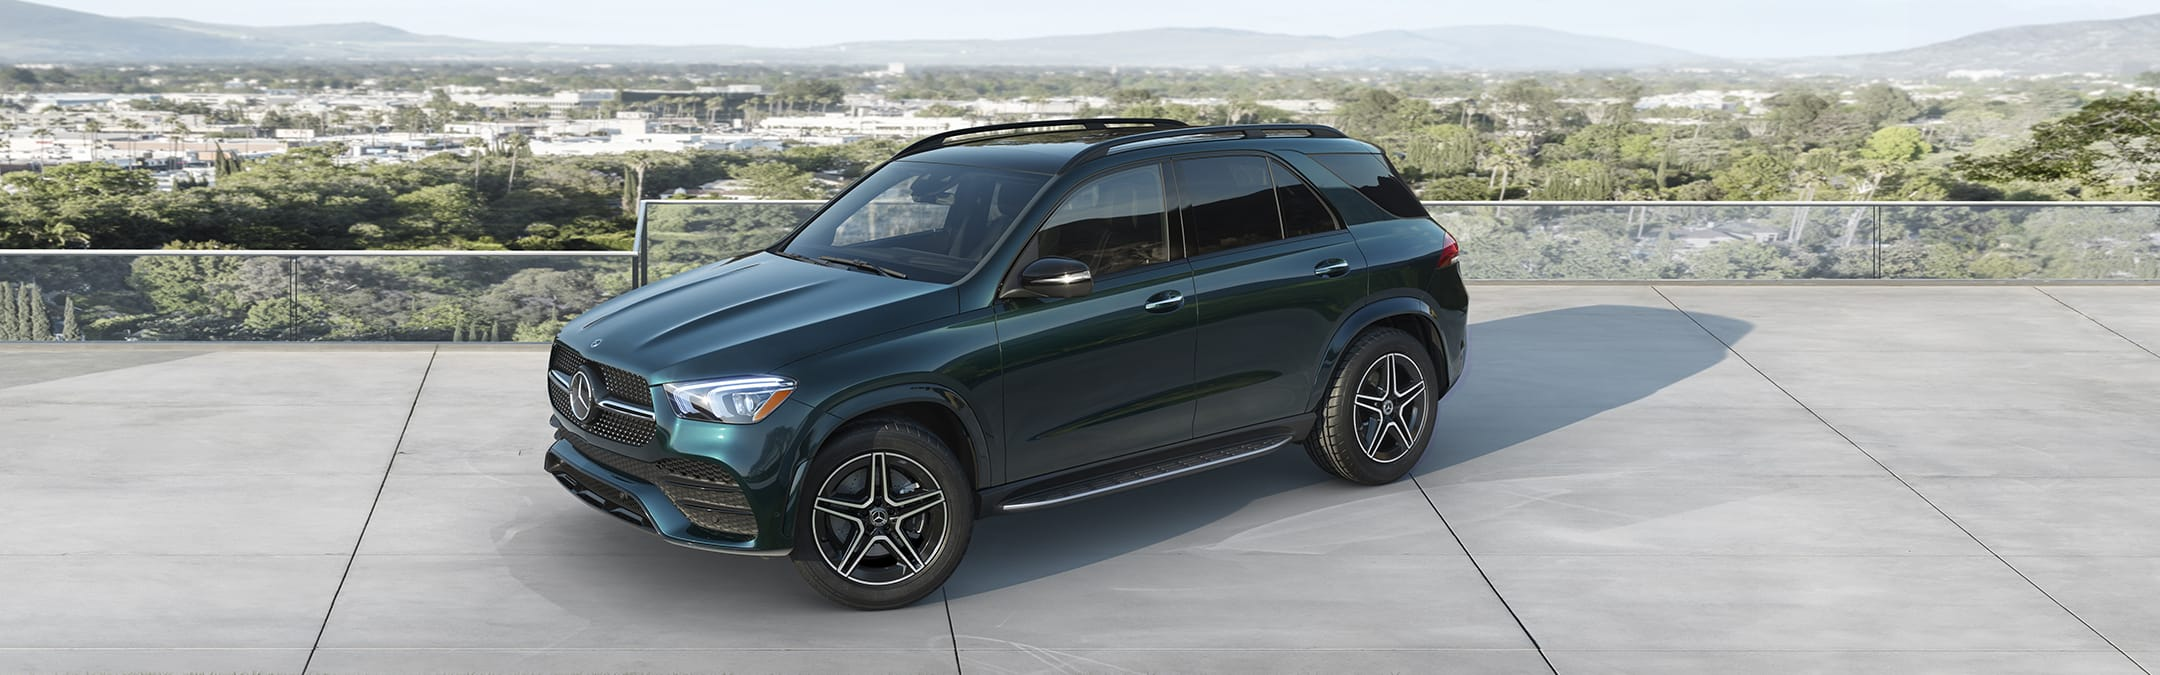 2020 GLE SUV Design